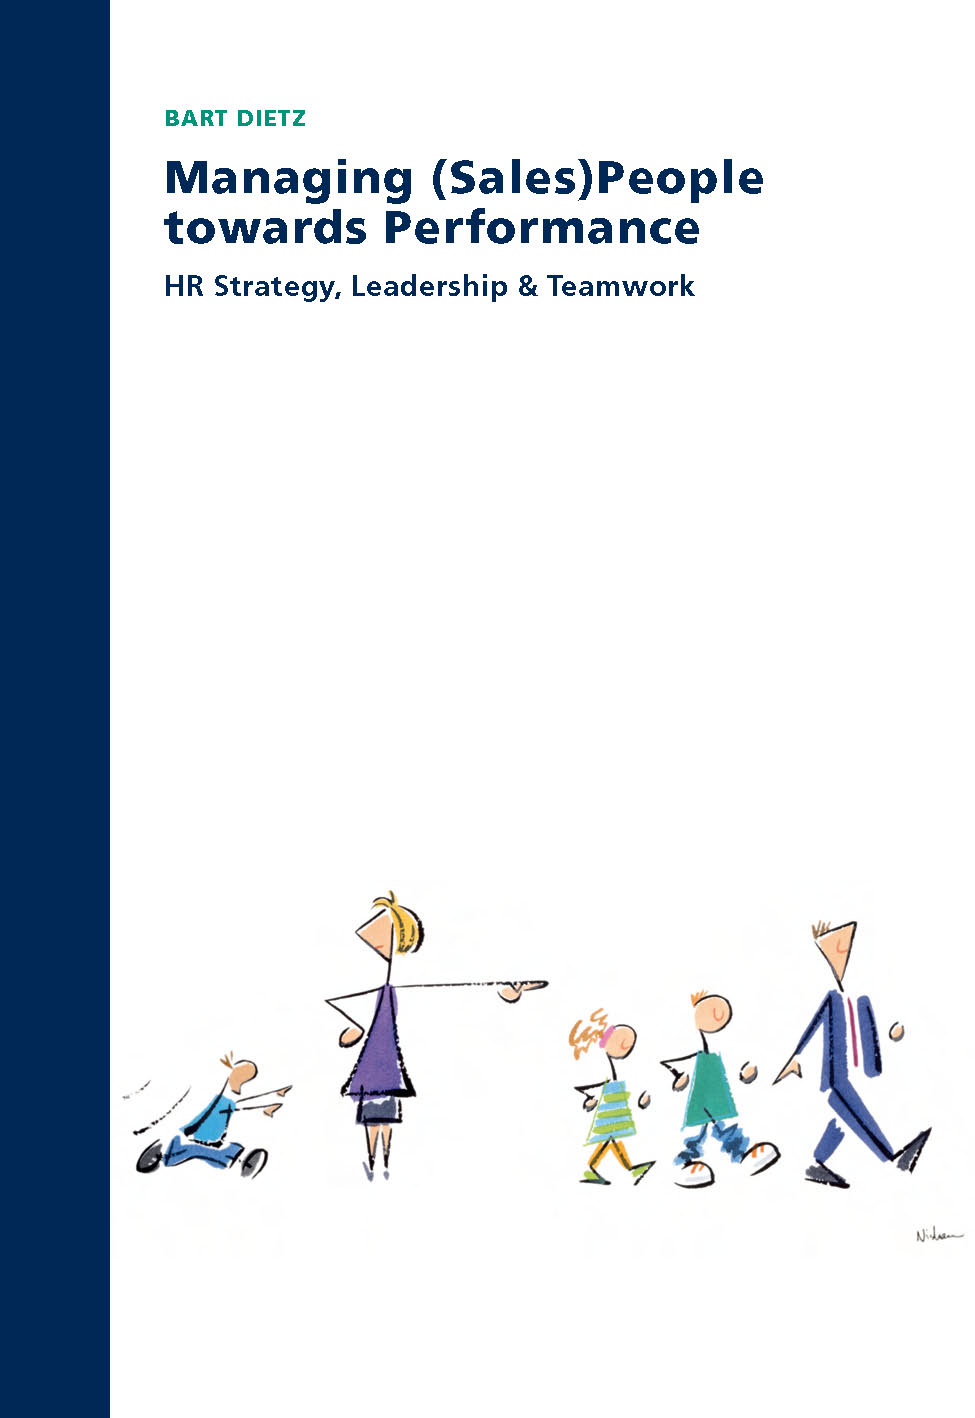 Managing (Sales)People towards Performance: HR Strategy, Leadership & Teamwork